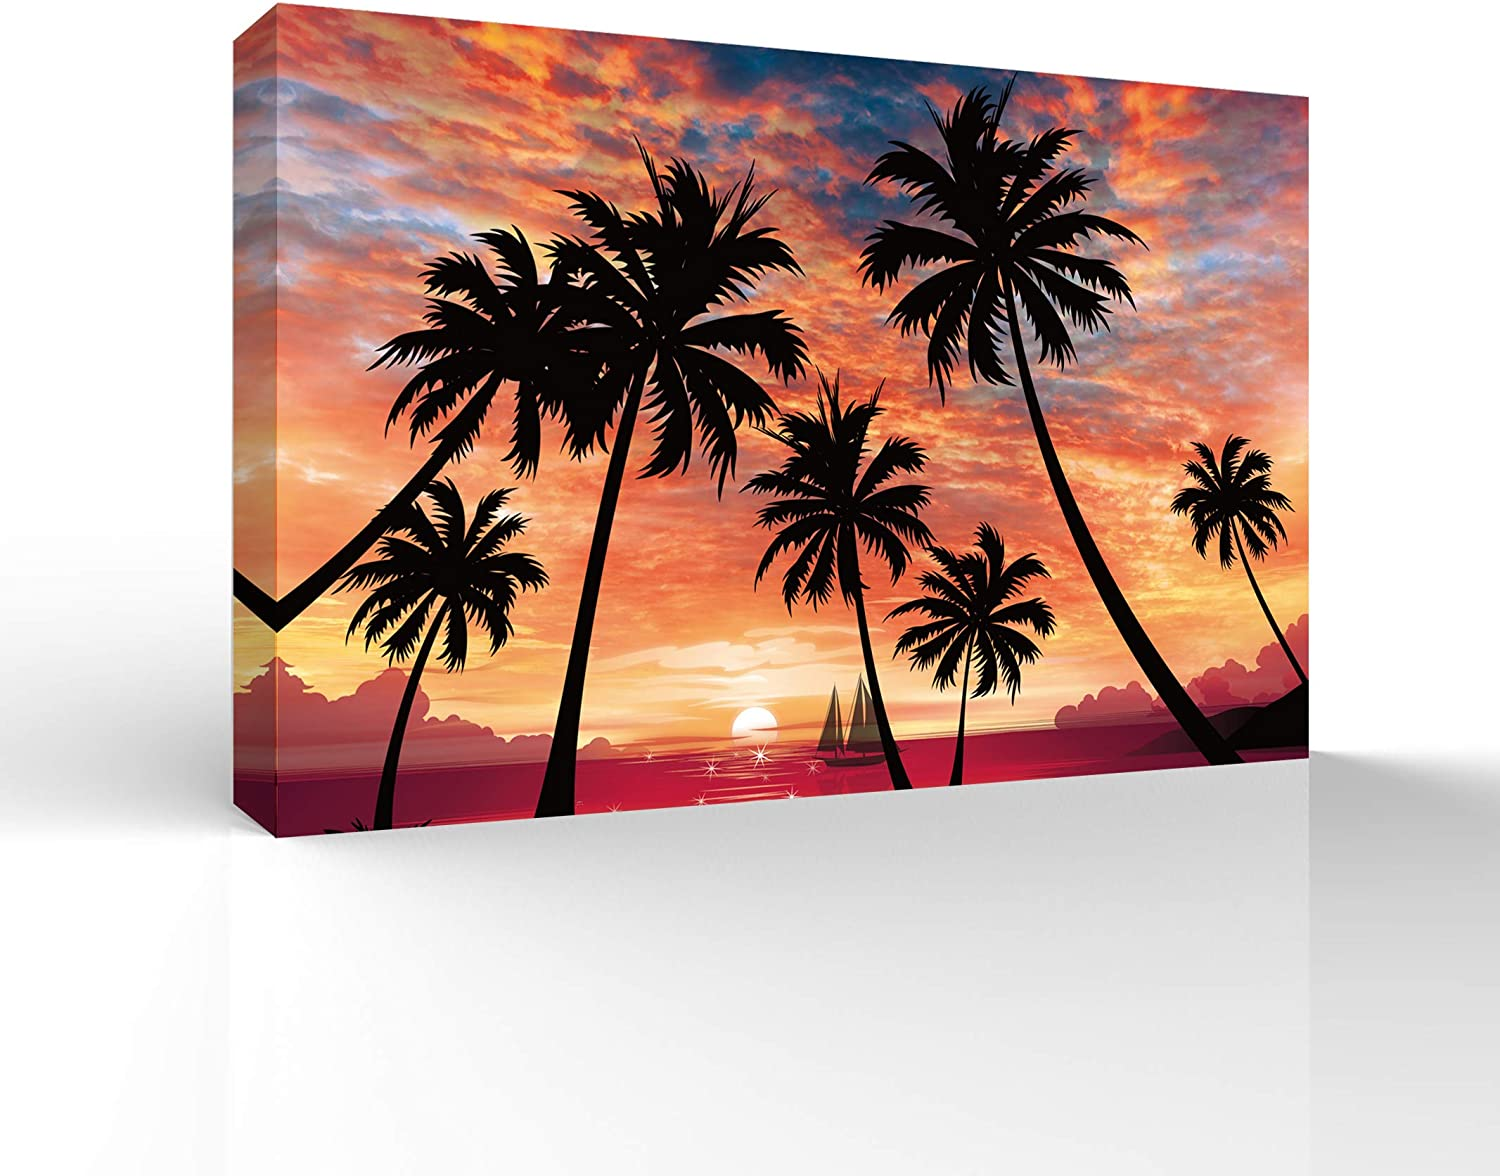 signwin Canvas Wall Art The Palms Under The Sunset Canvas Prints Home Artwork Decoration for Living Room,Bedroom - 12x18 inches